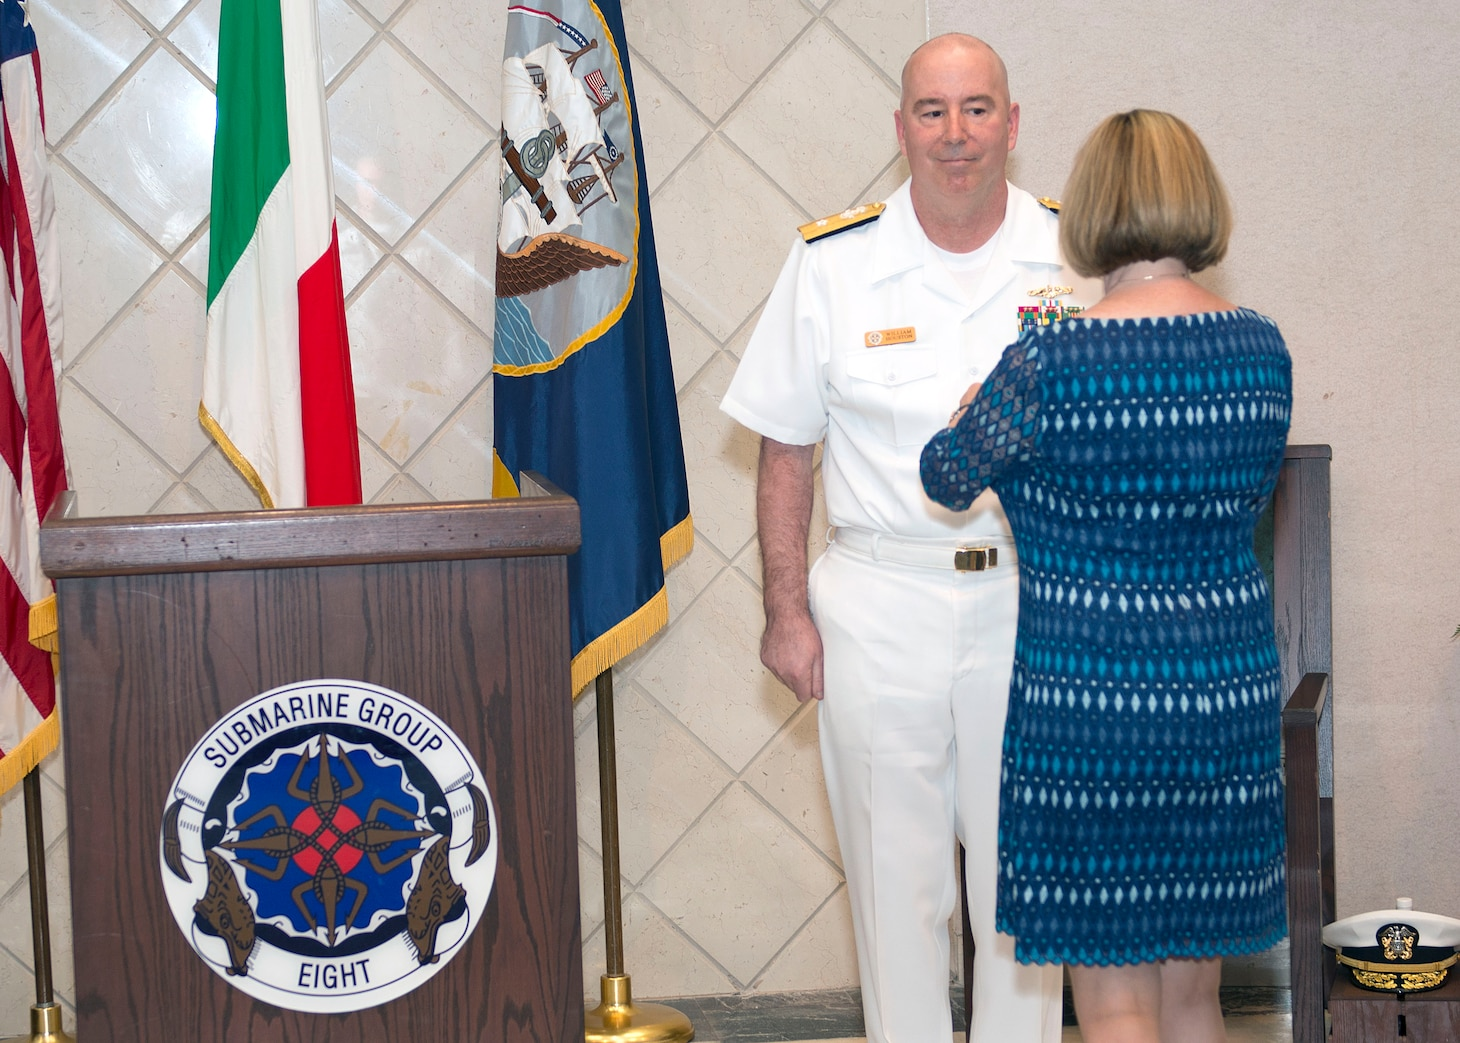 200616-N-DF478-0050 NAPLES, Italy (June 16, 2020) – Rear Adm. William J. Houston is pinned the Legion of Merit for his meritorious conduct in the performance of outstanding services and achievements while serving as Commander, Submarine Group (CSG) 8 by his wife Colleen during a change of command ceremony in Naples, Italy, June 16, 2020. Rear Adm. Anthony C. Carullo relieved Rear Adm. William J. Houston as commander of the submarine group. U.S. 6th Fleet, headquartered in Naples, Italy, conducts the full spectrum of joint and naval operations, often in concert with allied and interagency partners in order to advance U.S. national interests and security and stability in Europe and Africa. (U.S. Navy photo by Mass Communication Specialist 1st Class Marvin E. Thompson Jr.)